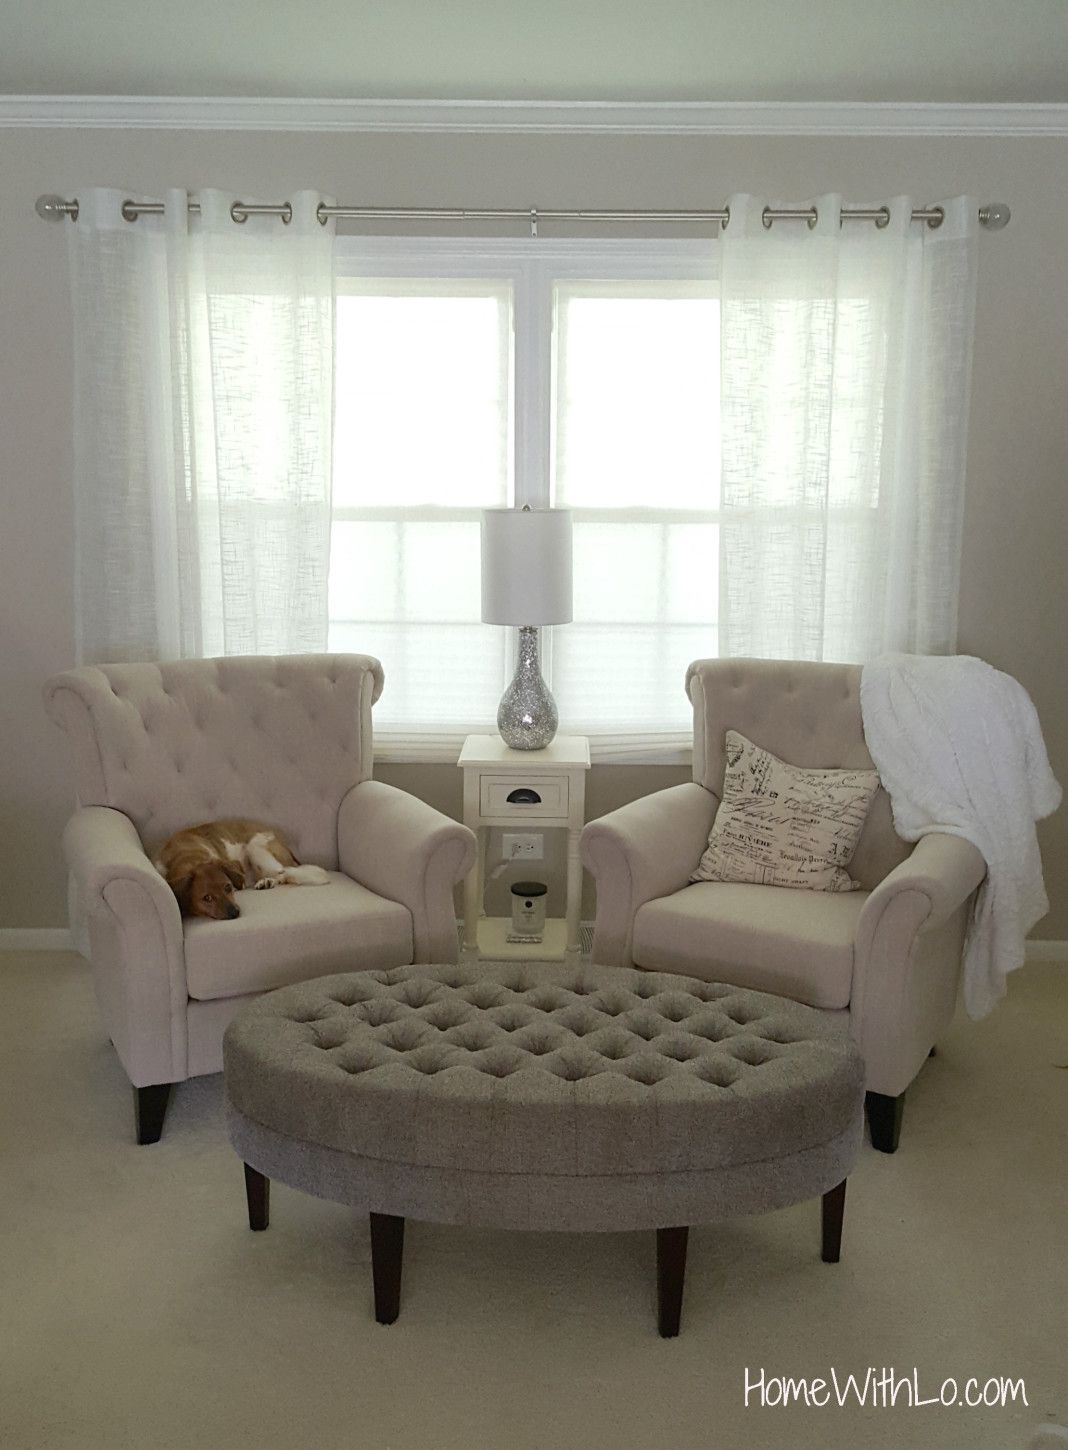 Double Tufted Arm Chairs With Tufted Ottoman For A Formal Sitting